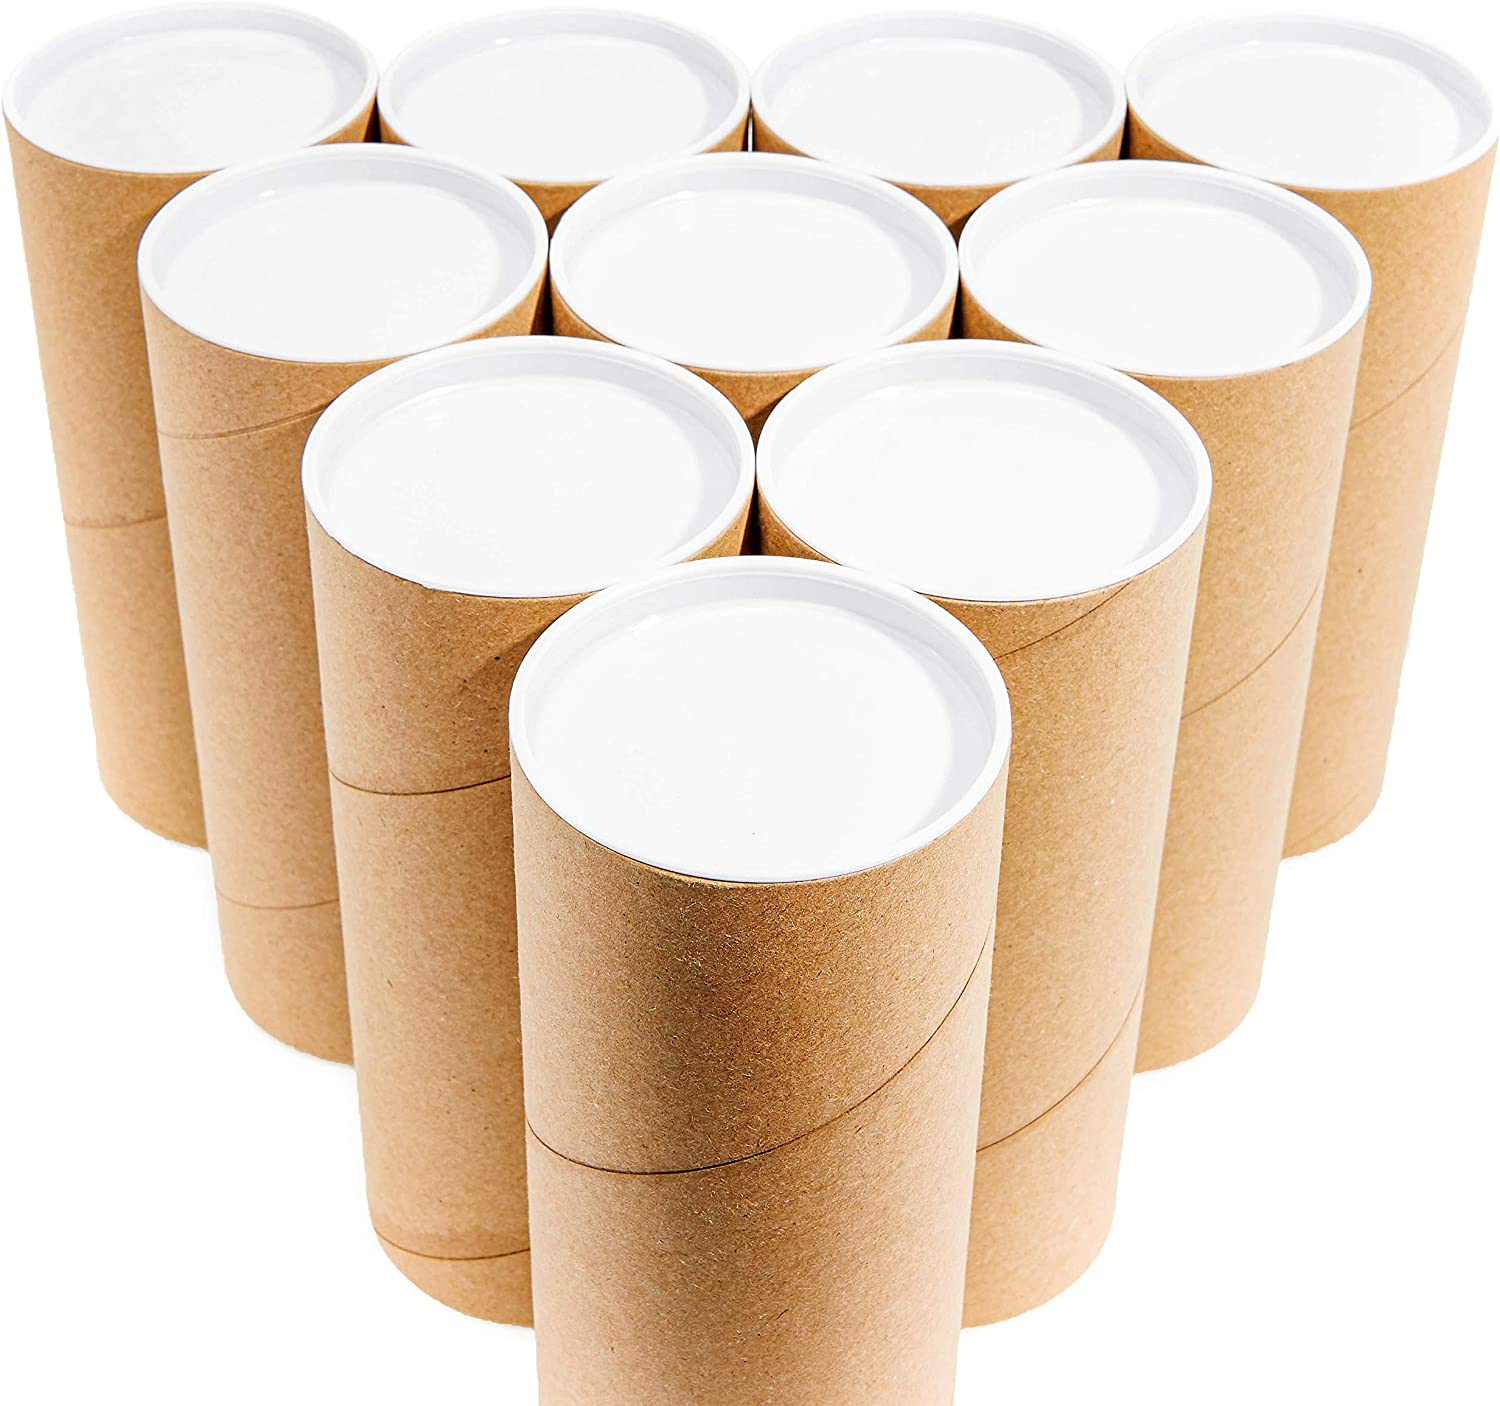 Juvale Mailing Shipping Tubes with Caps 3 x 7 Inches 10 Pack Brown Kraft